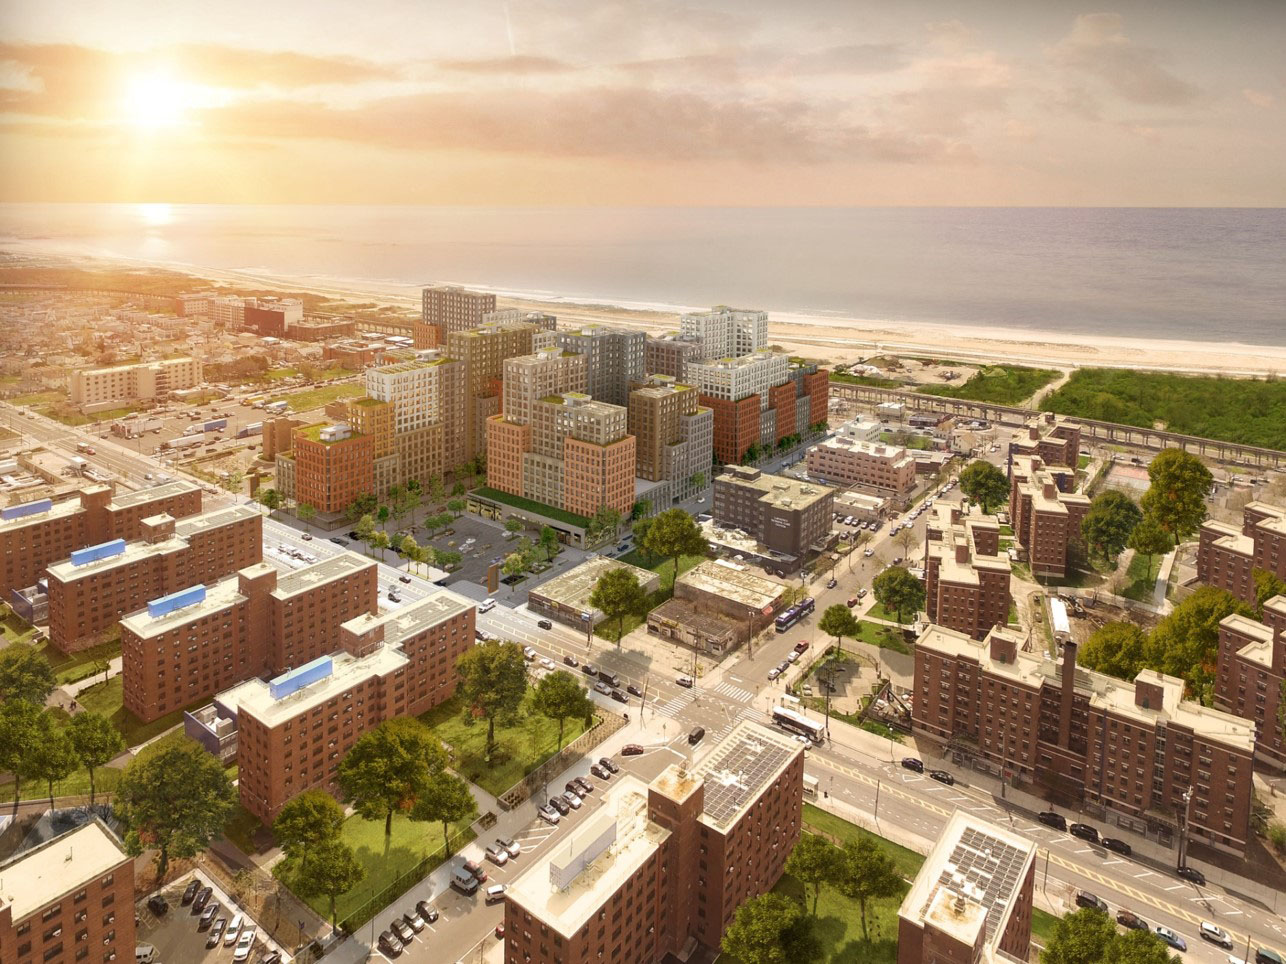 Rockaway Peninsula set for a real estate renaissance as development accelerates